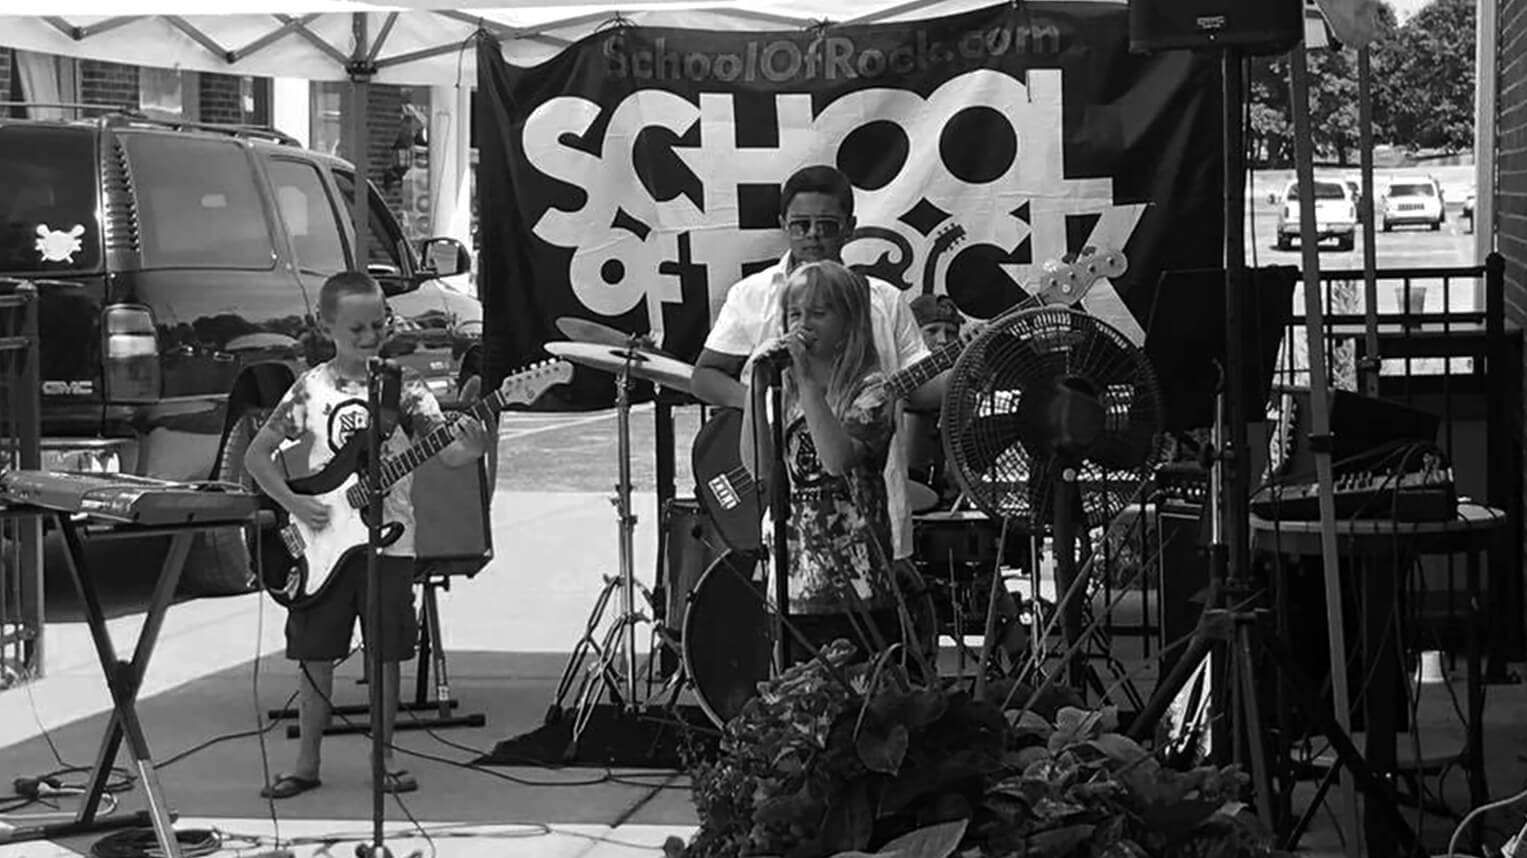 Local Spring Music Workshops at School of Rock